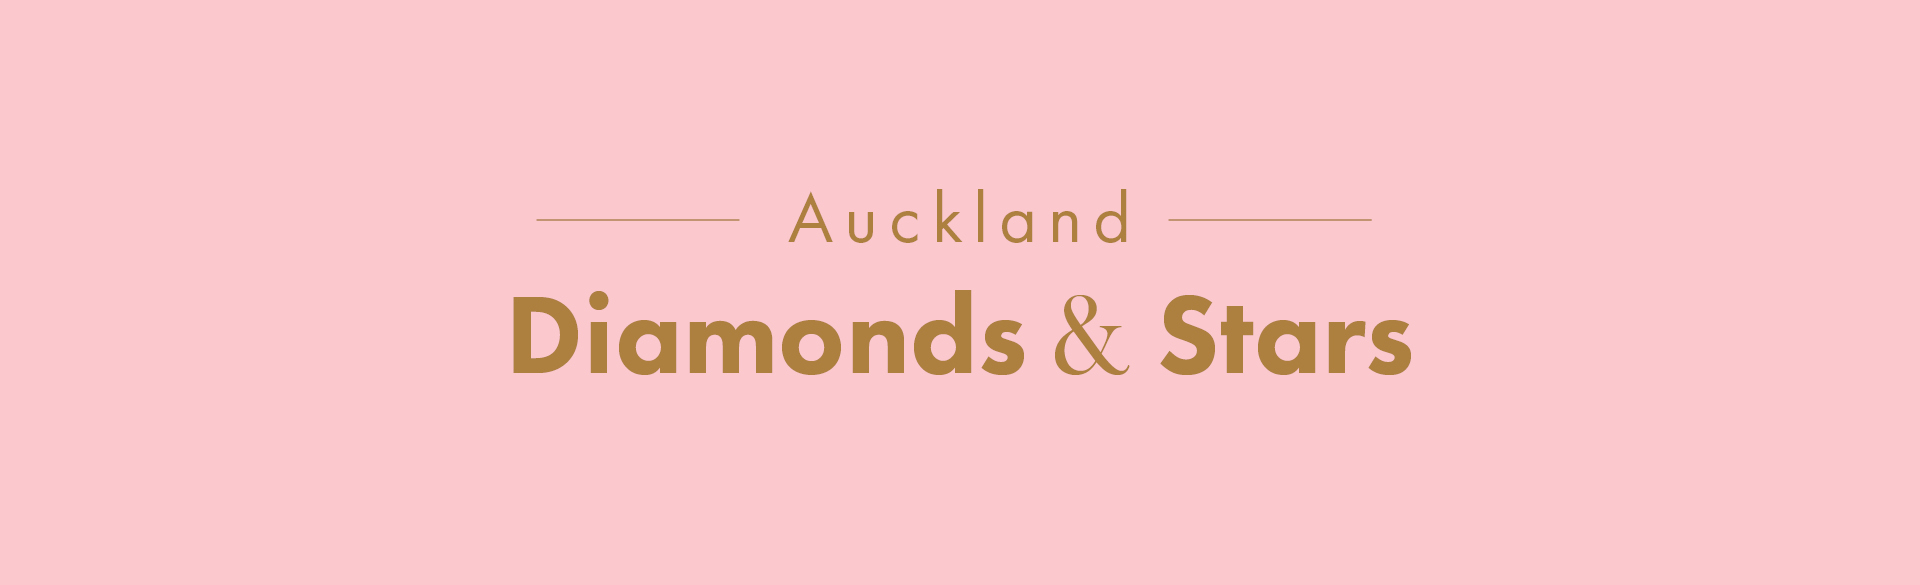 Auckland Diamonds & Stars